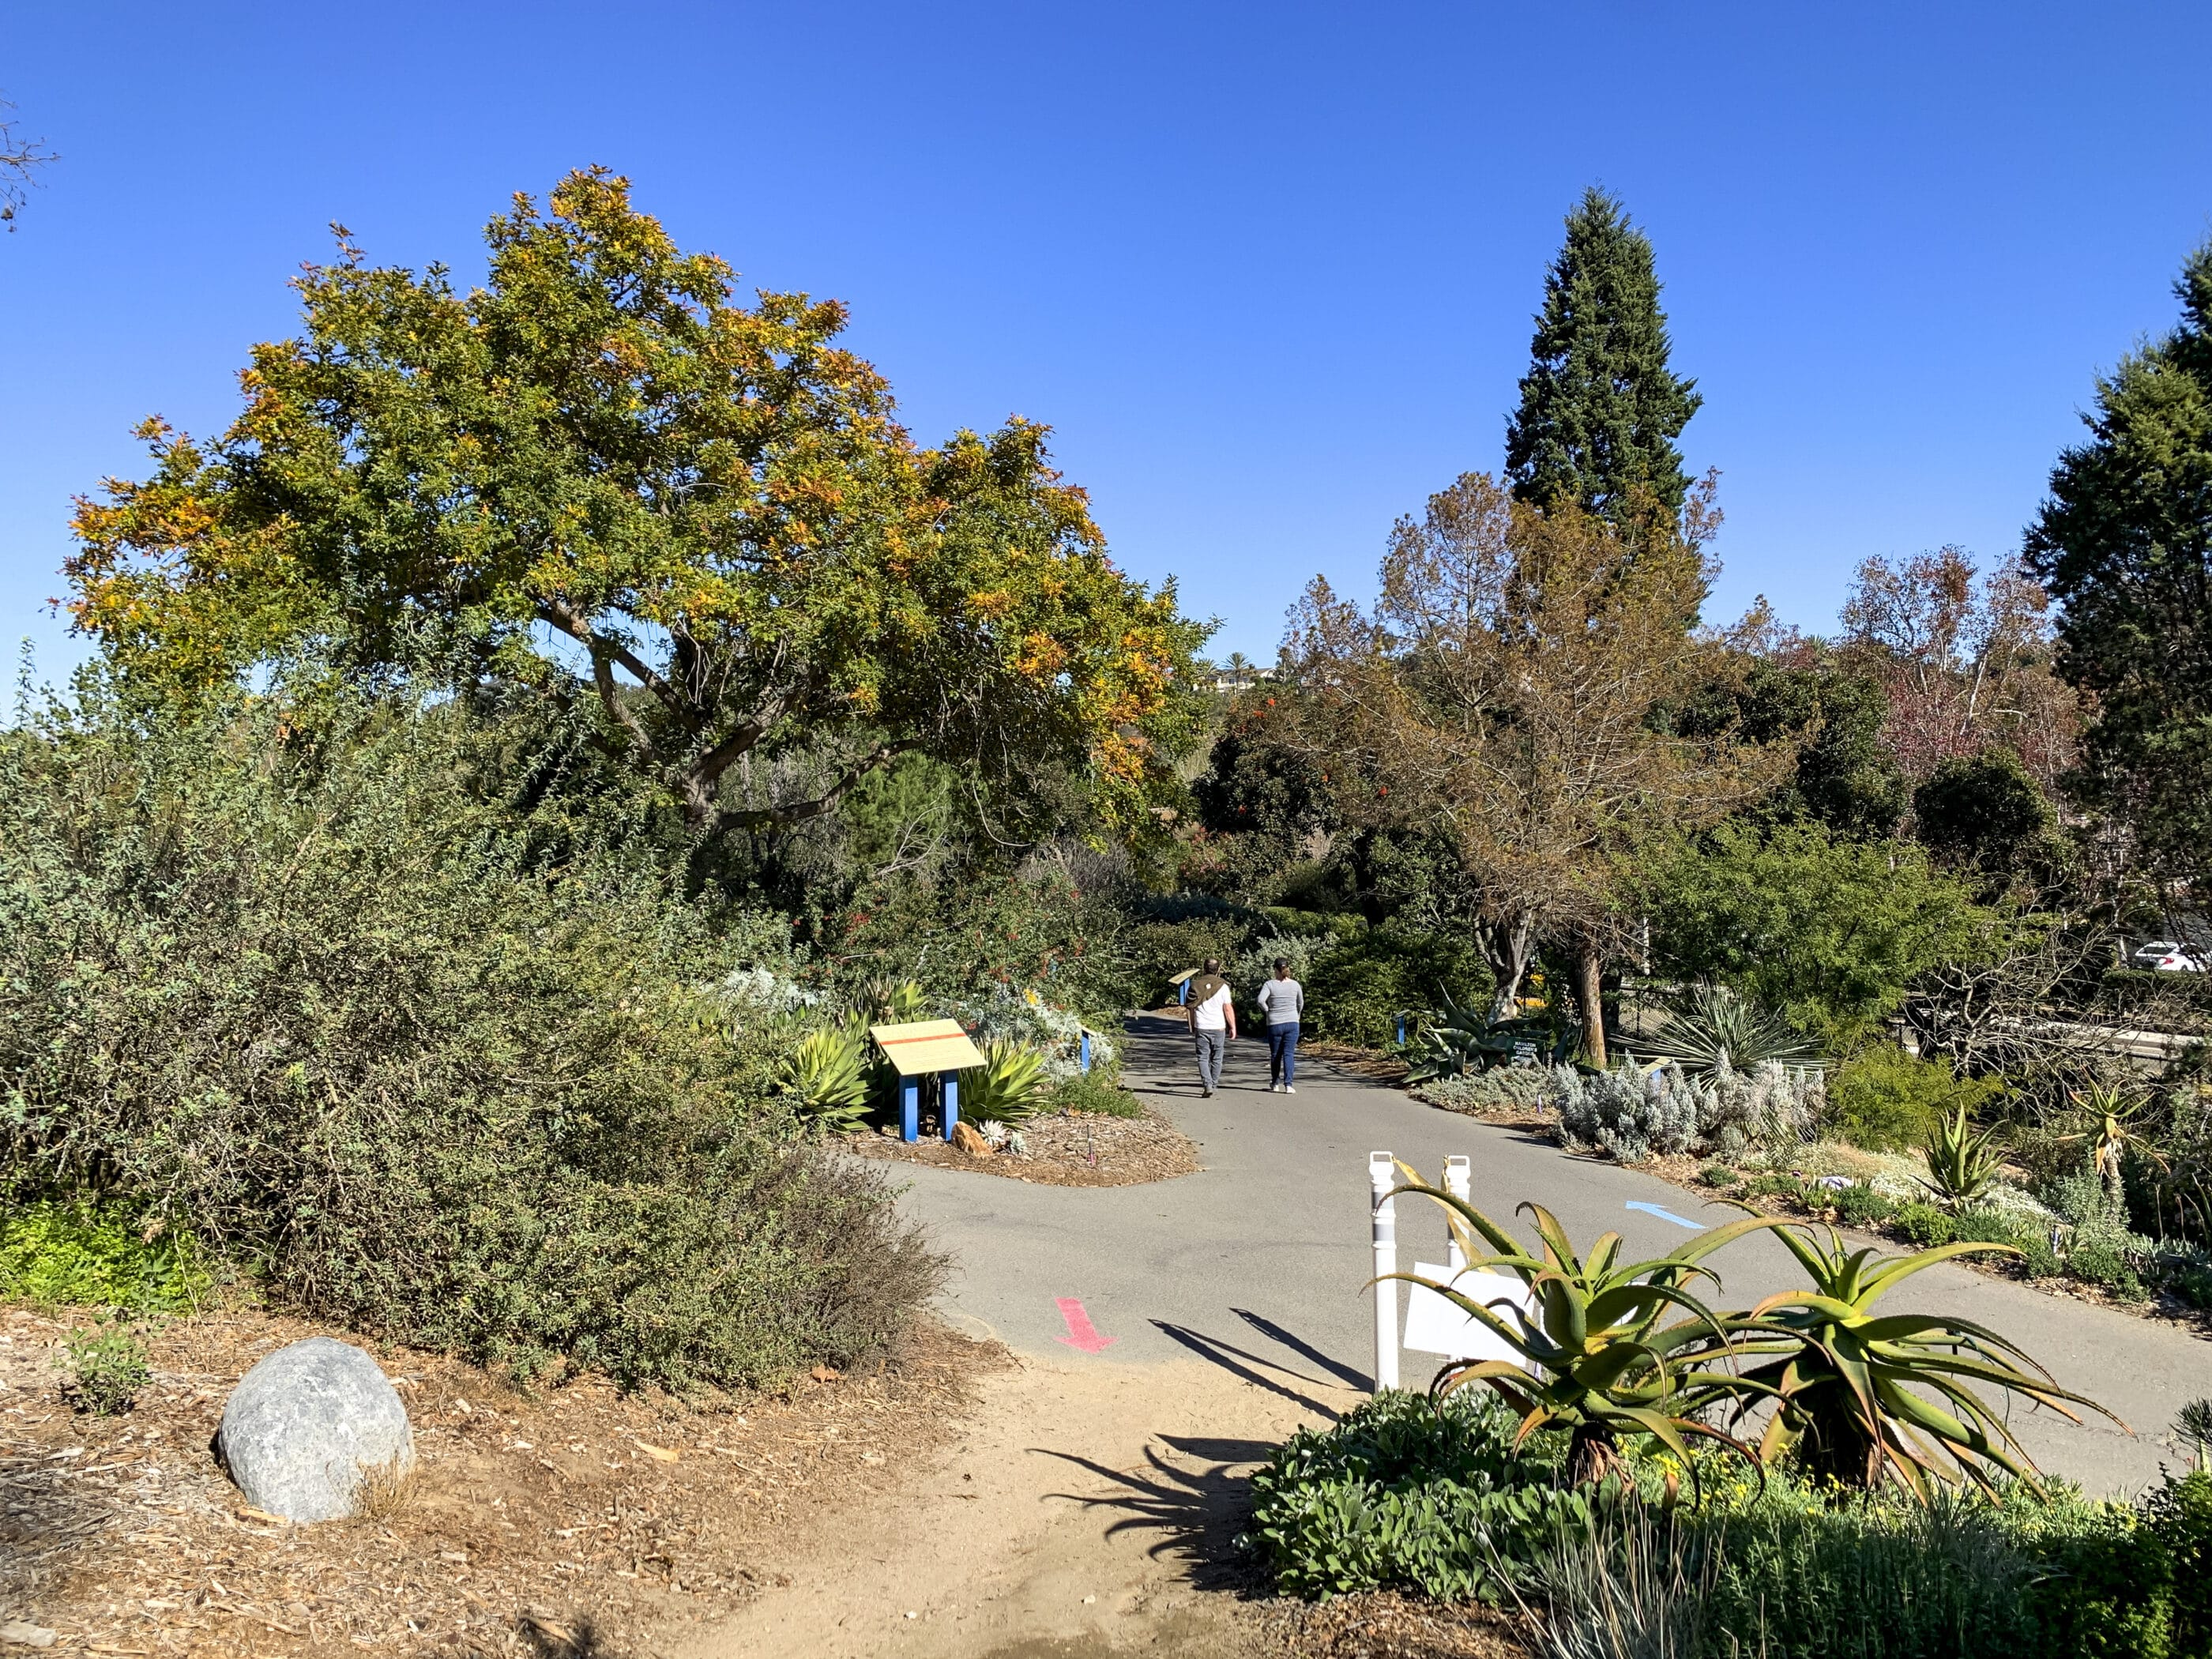 People walk along a paved path at San Diego Botanic Garden under blue skies and sunshine in December.